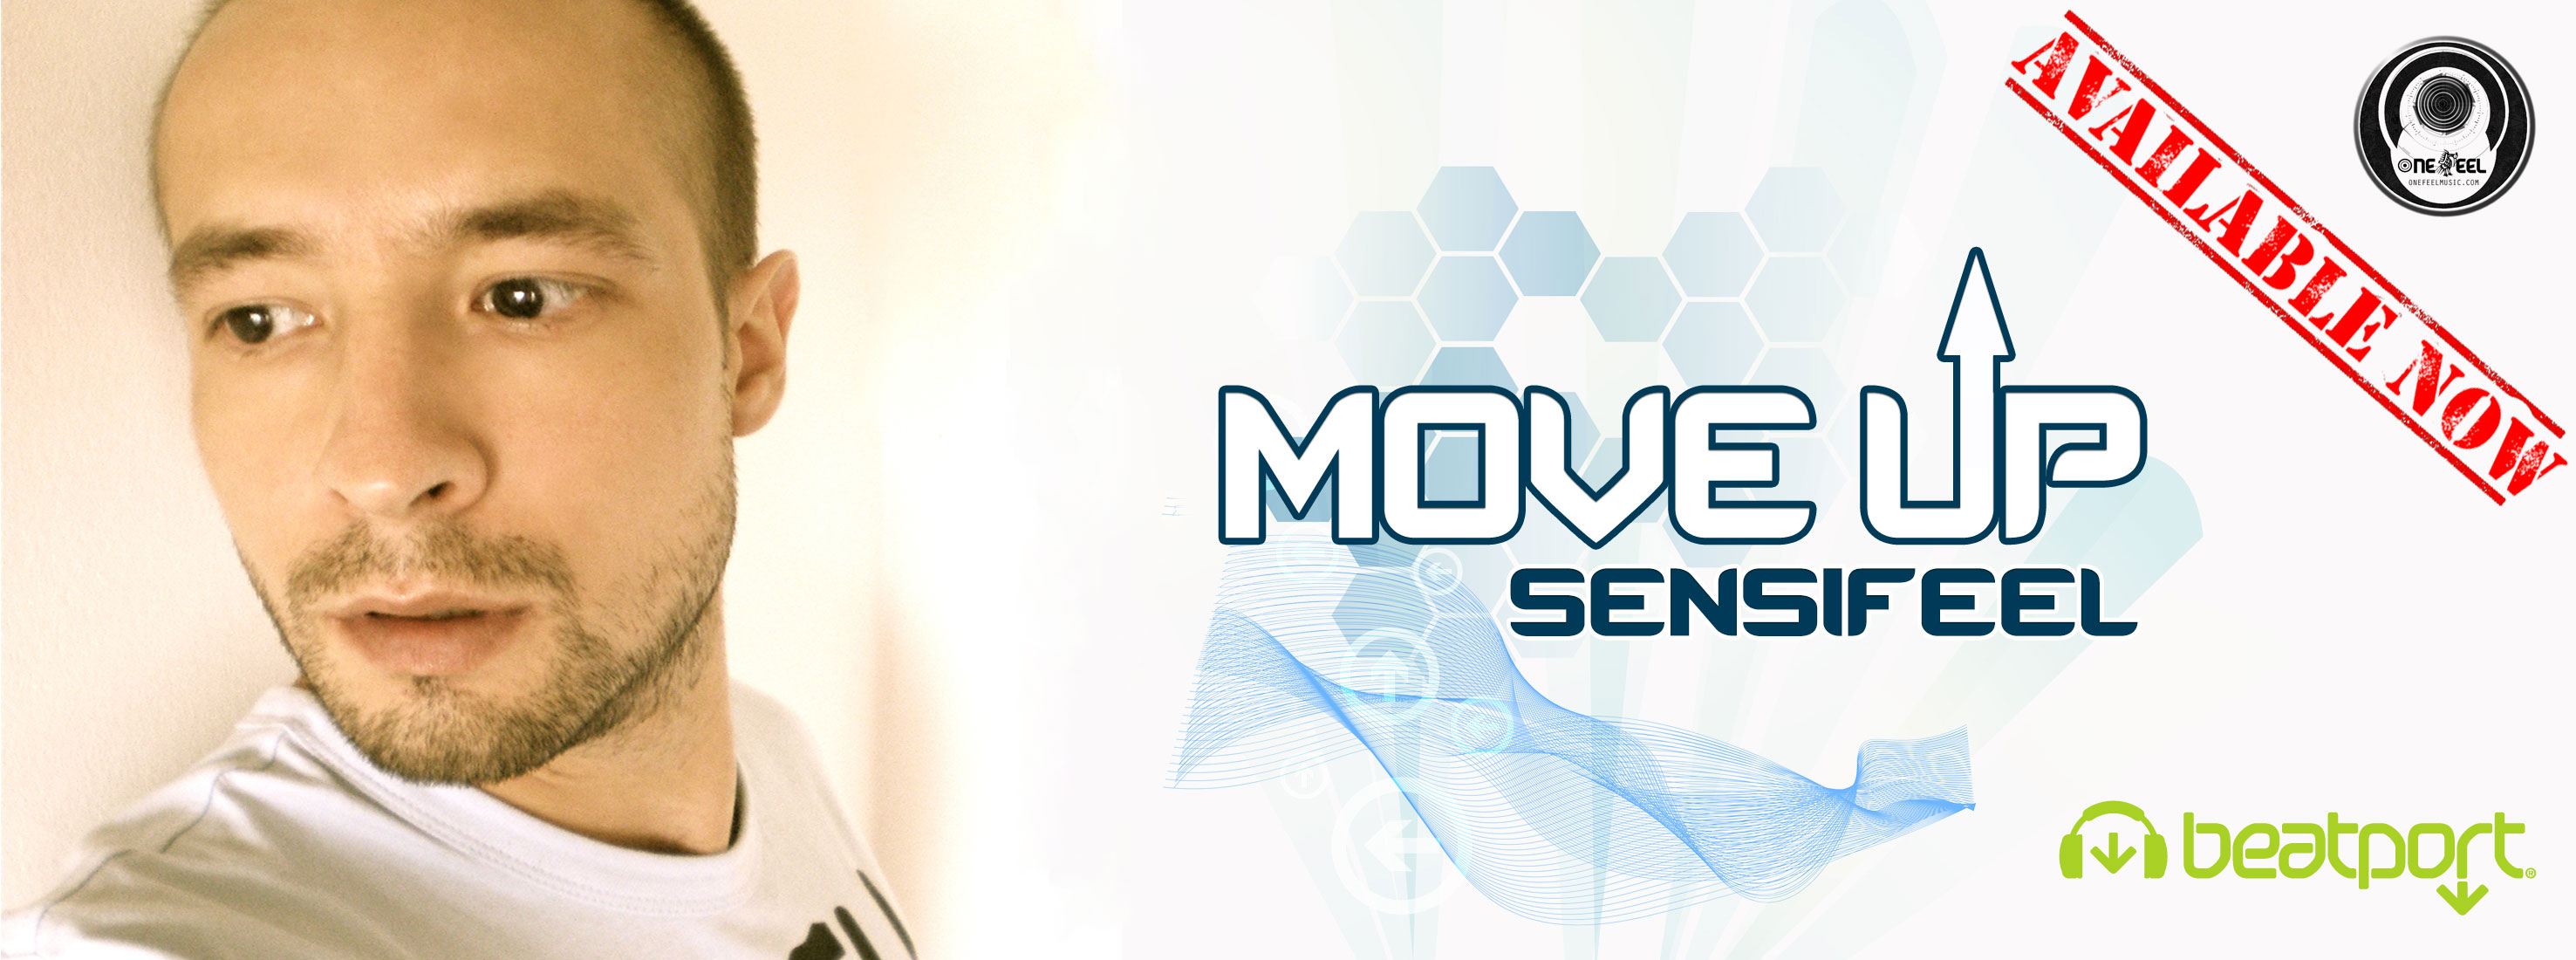 Banner_Move-upw